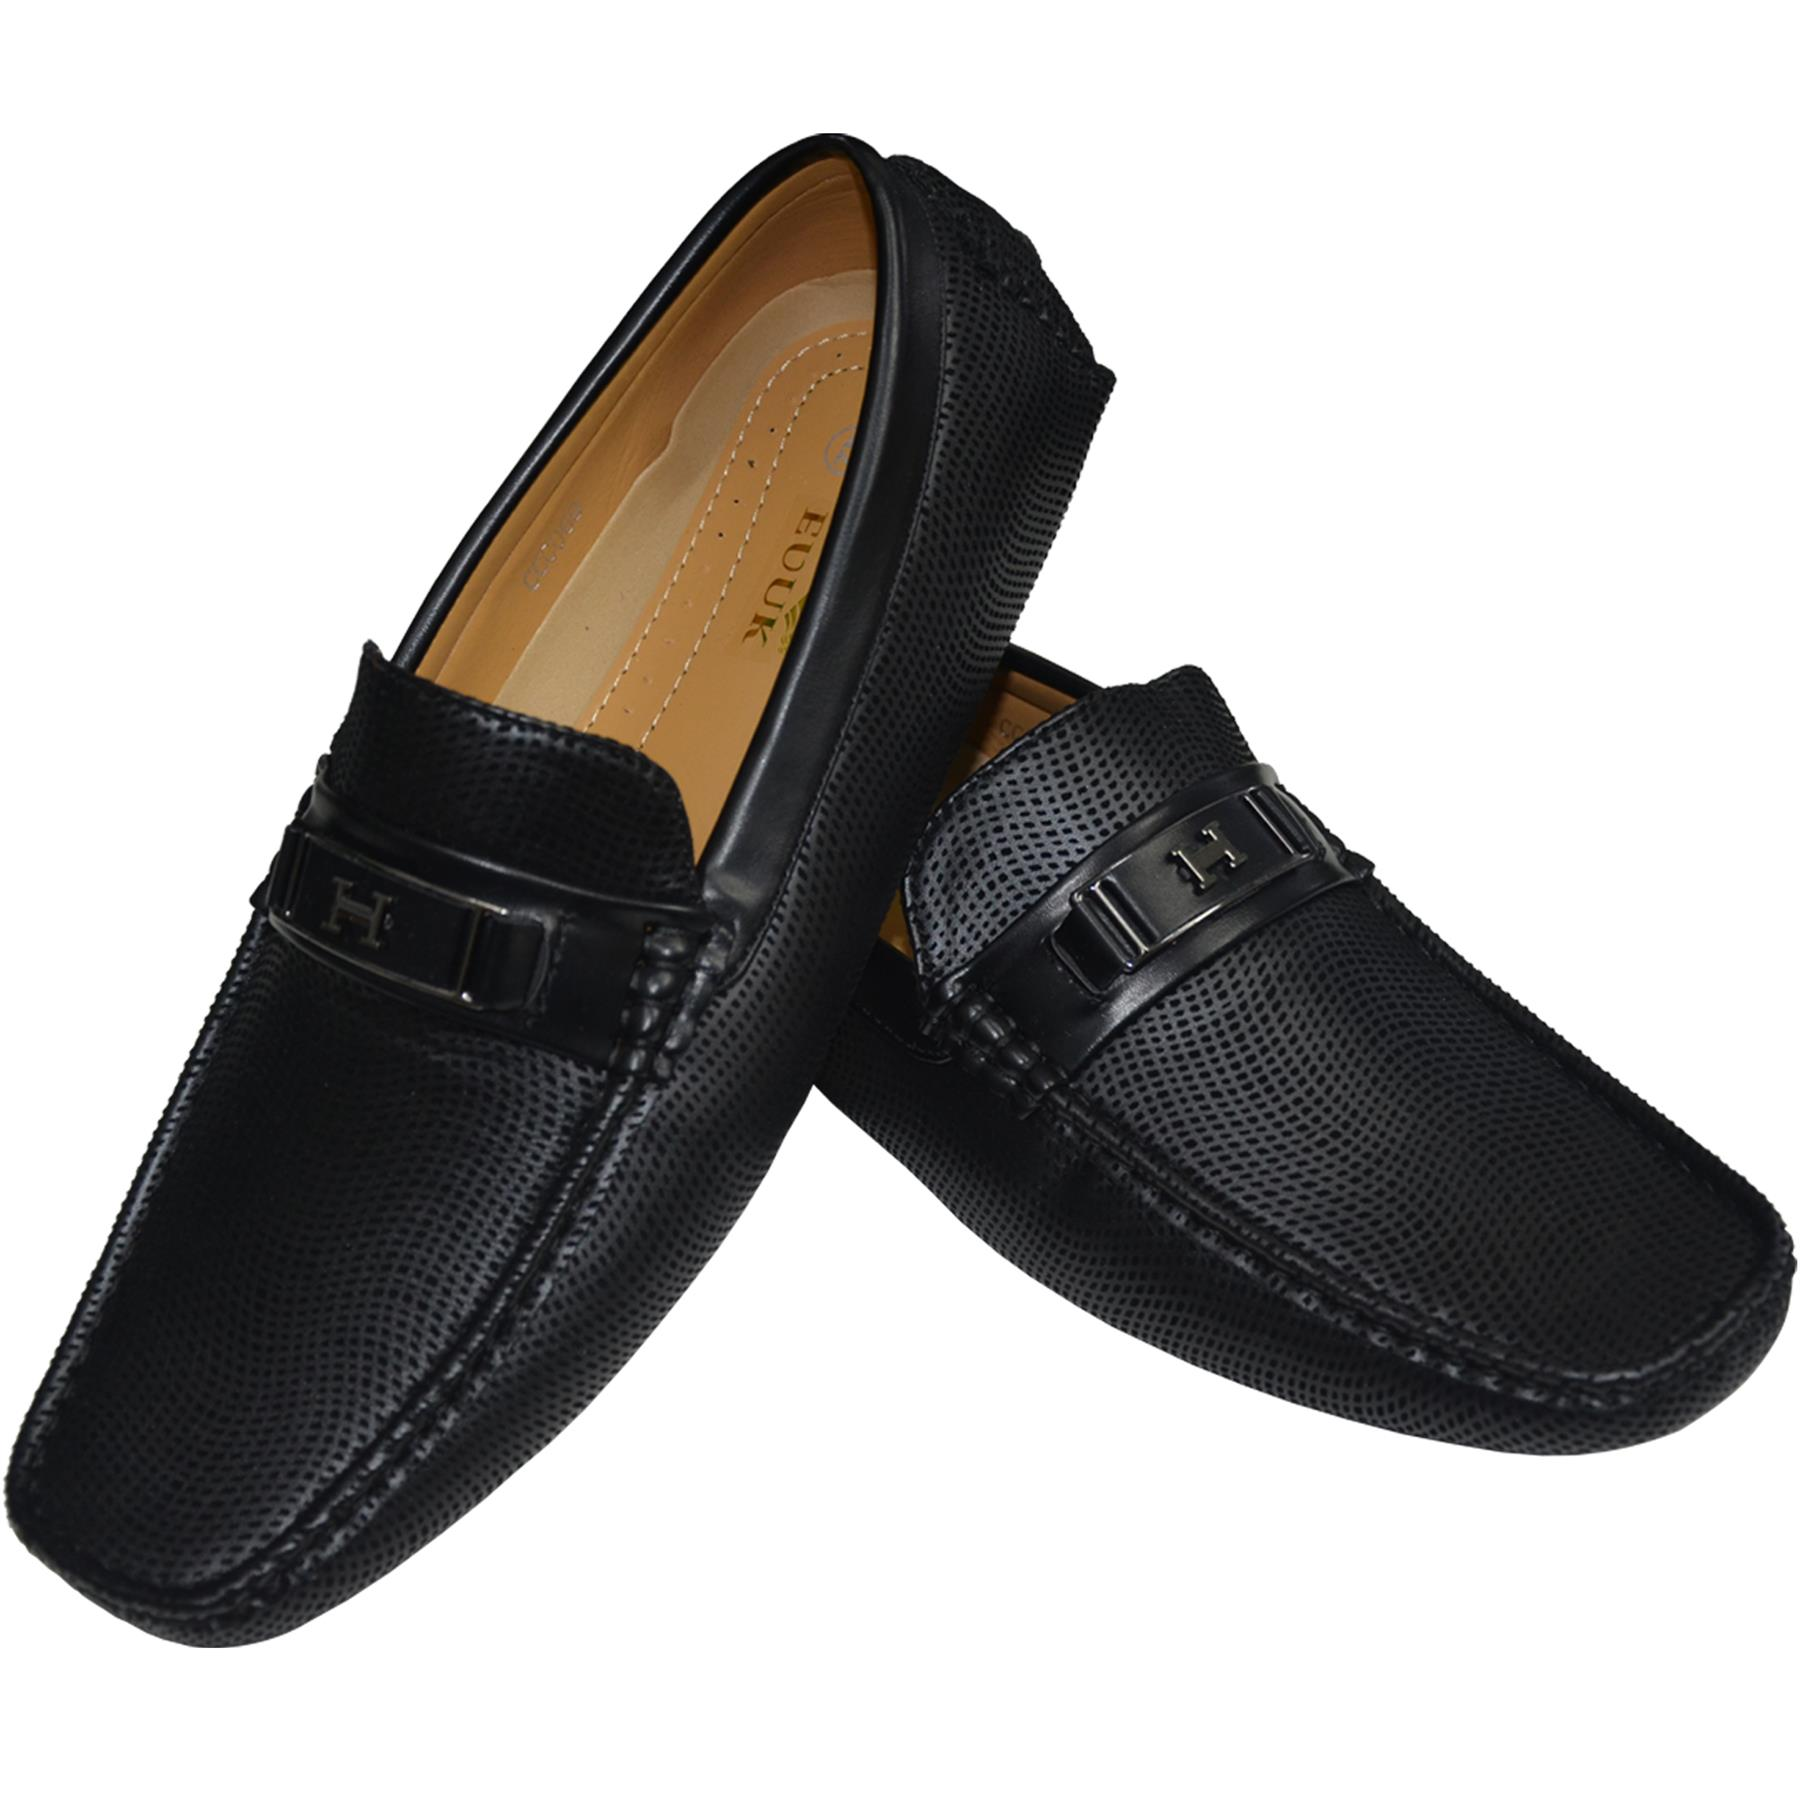 Mens-Suede-Loafers-Shoes-Moccasin-Slip-On-Casual-Boat-Driving-UK-Sizes-6-12 thumbnail 4